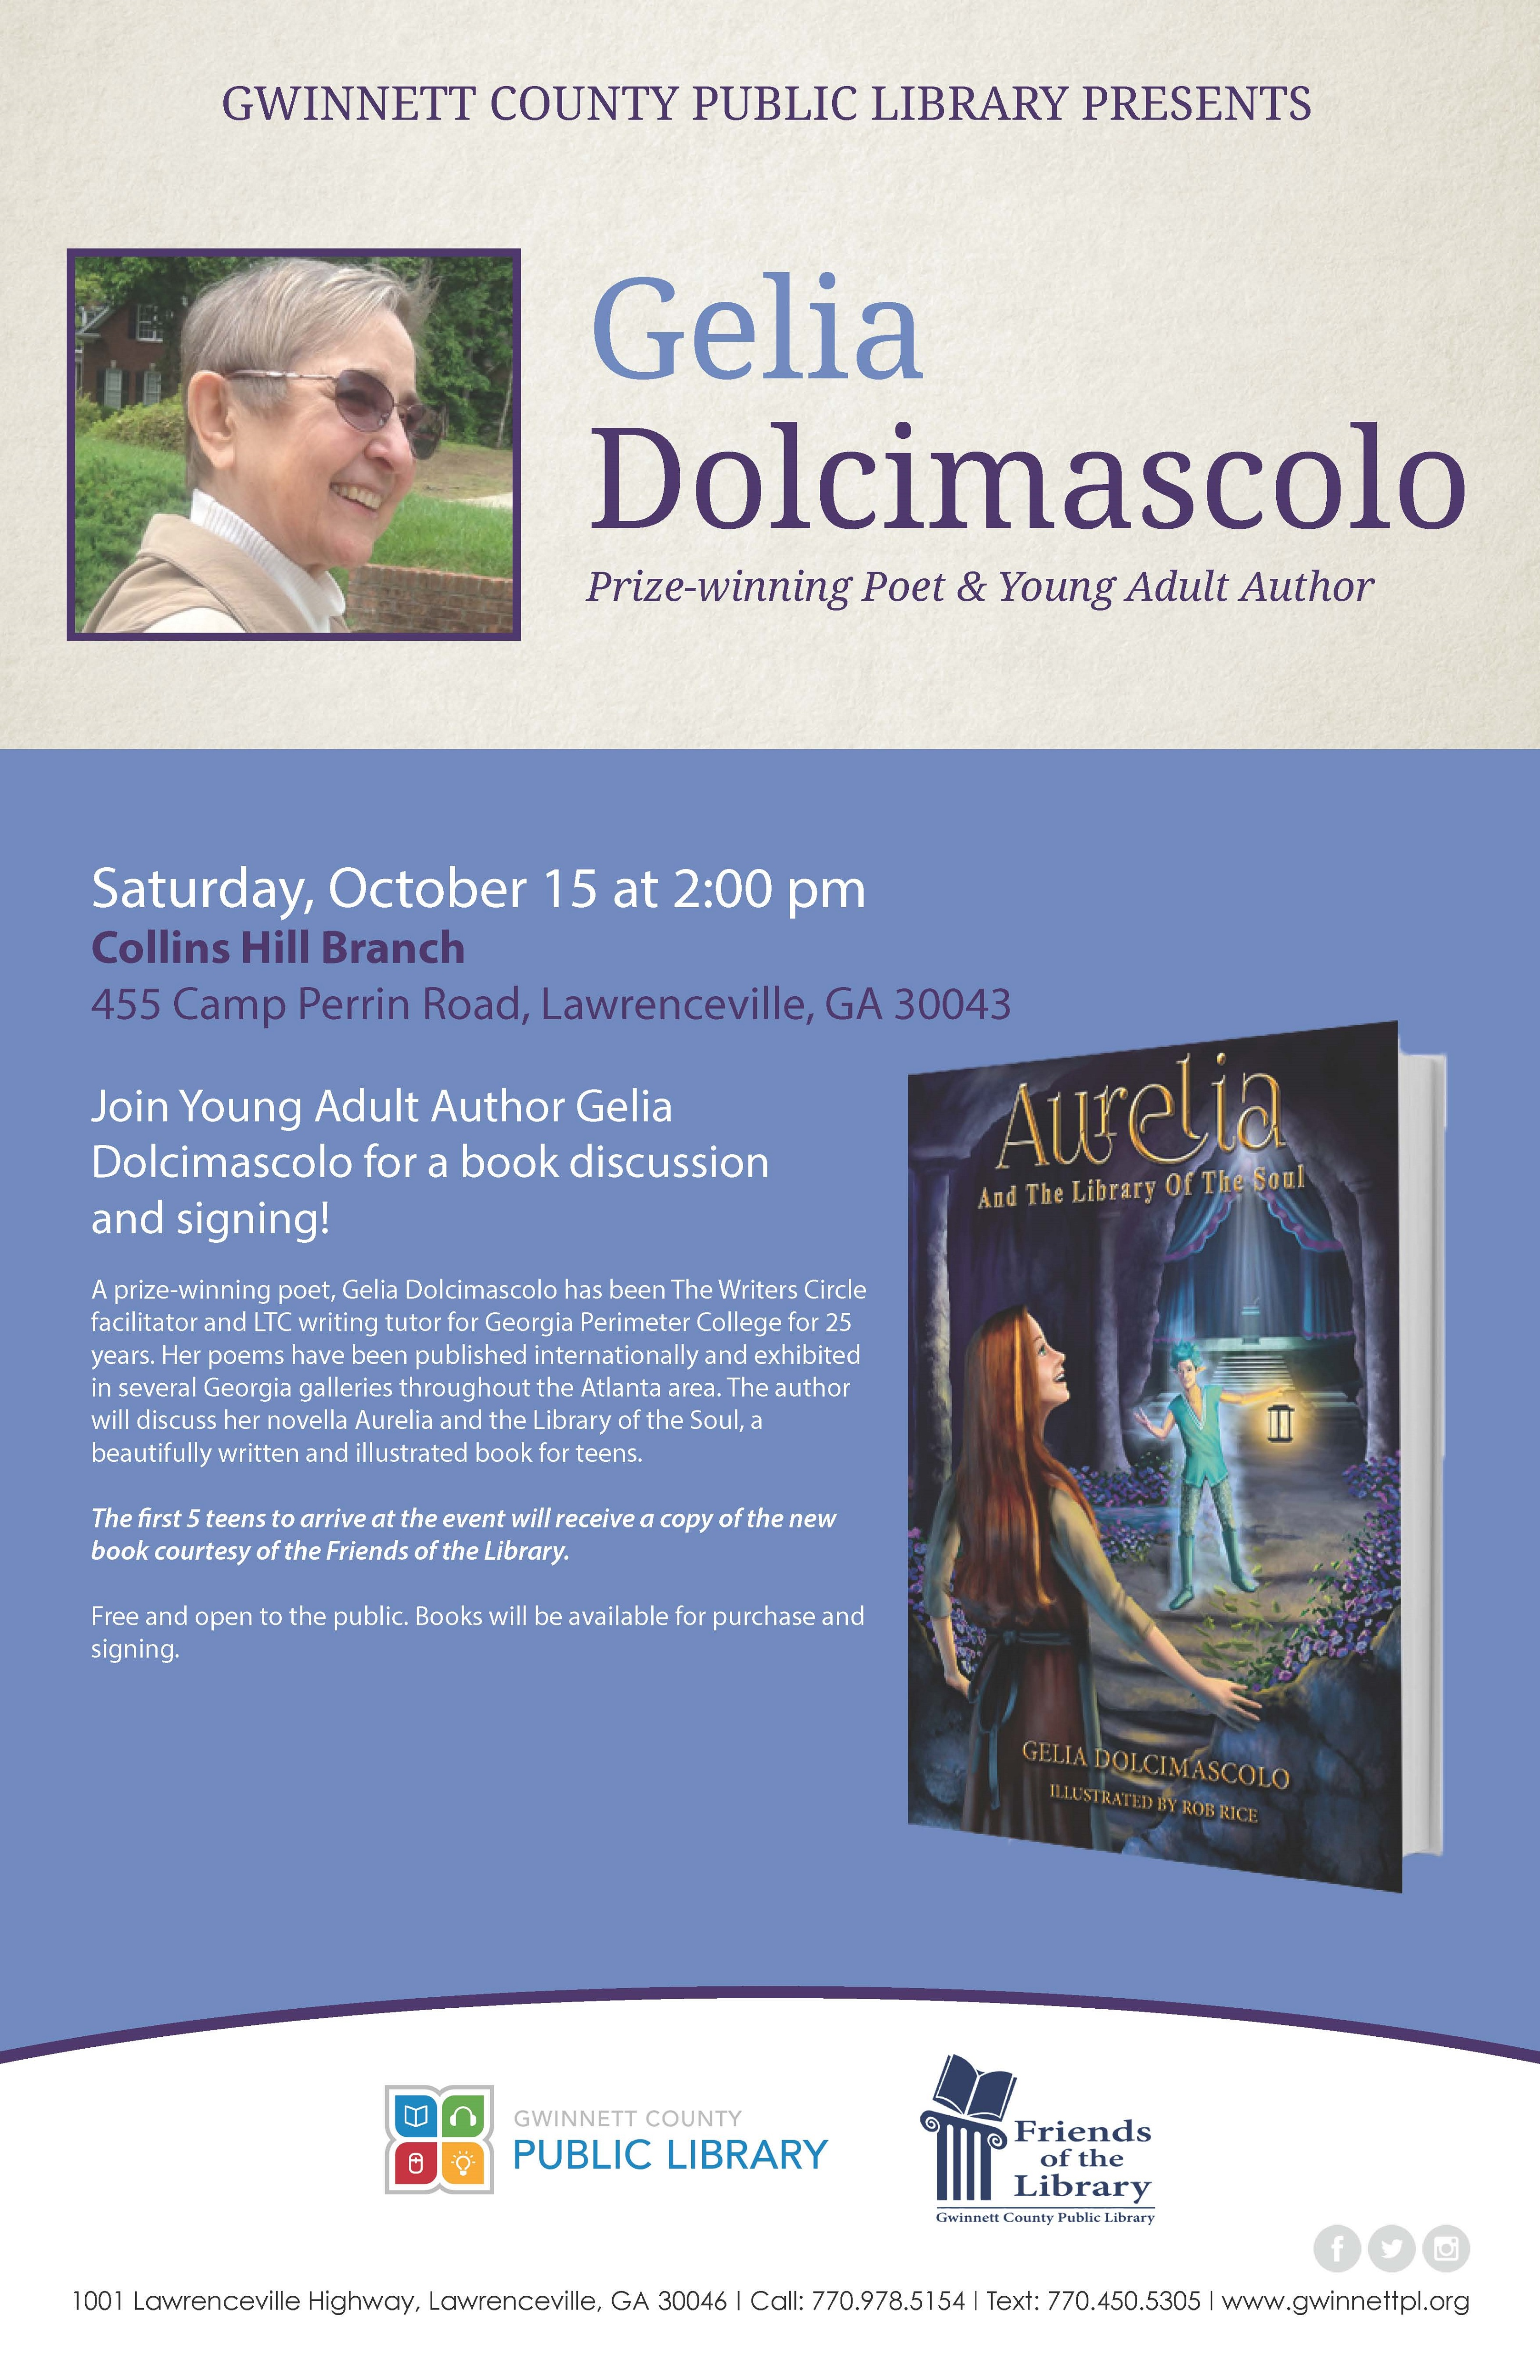 Gelia Dolcimascolo, American Novelist - Presented by